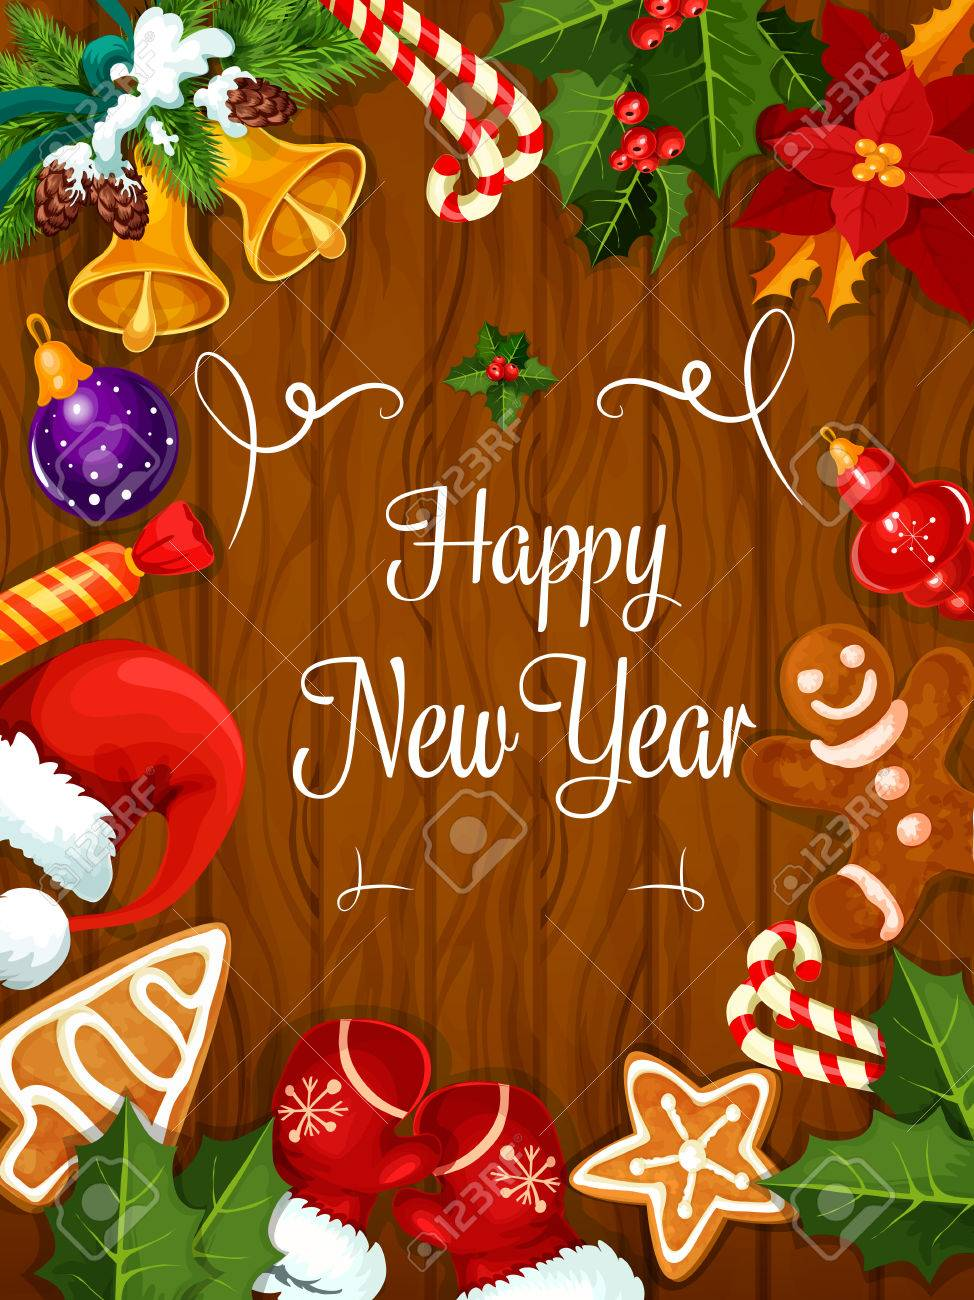 Happy new year greeting card or poster best wishes happy new year greeting card or poster best wishes congratulations from new year holiday celebration kristyandbryce Choice Image